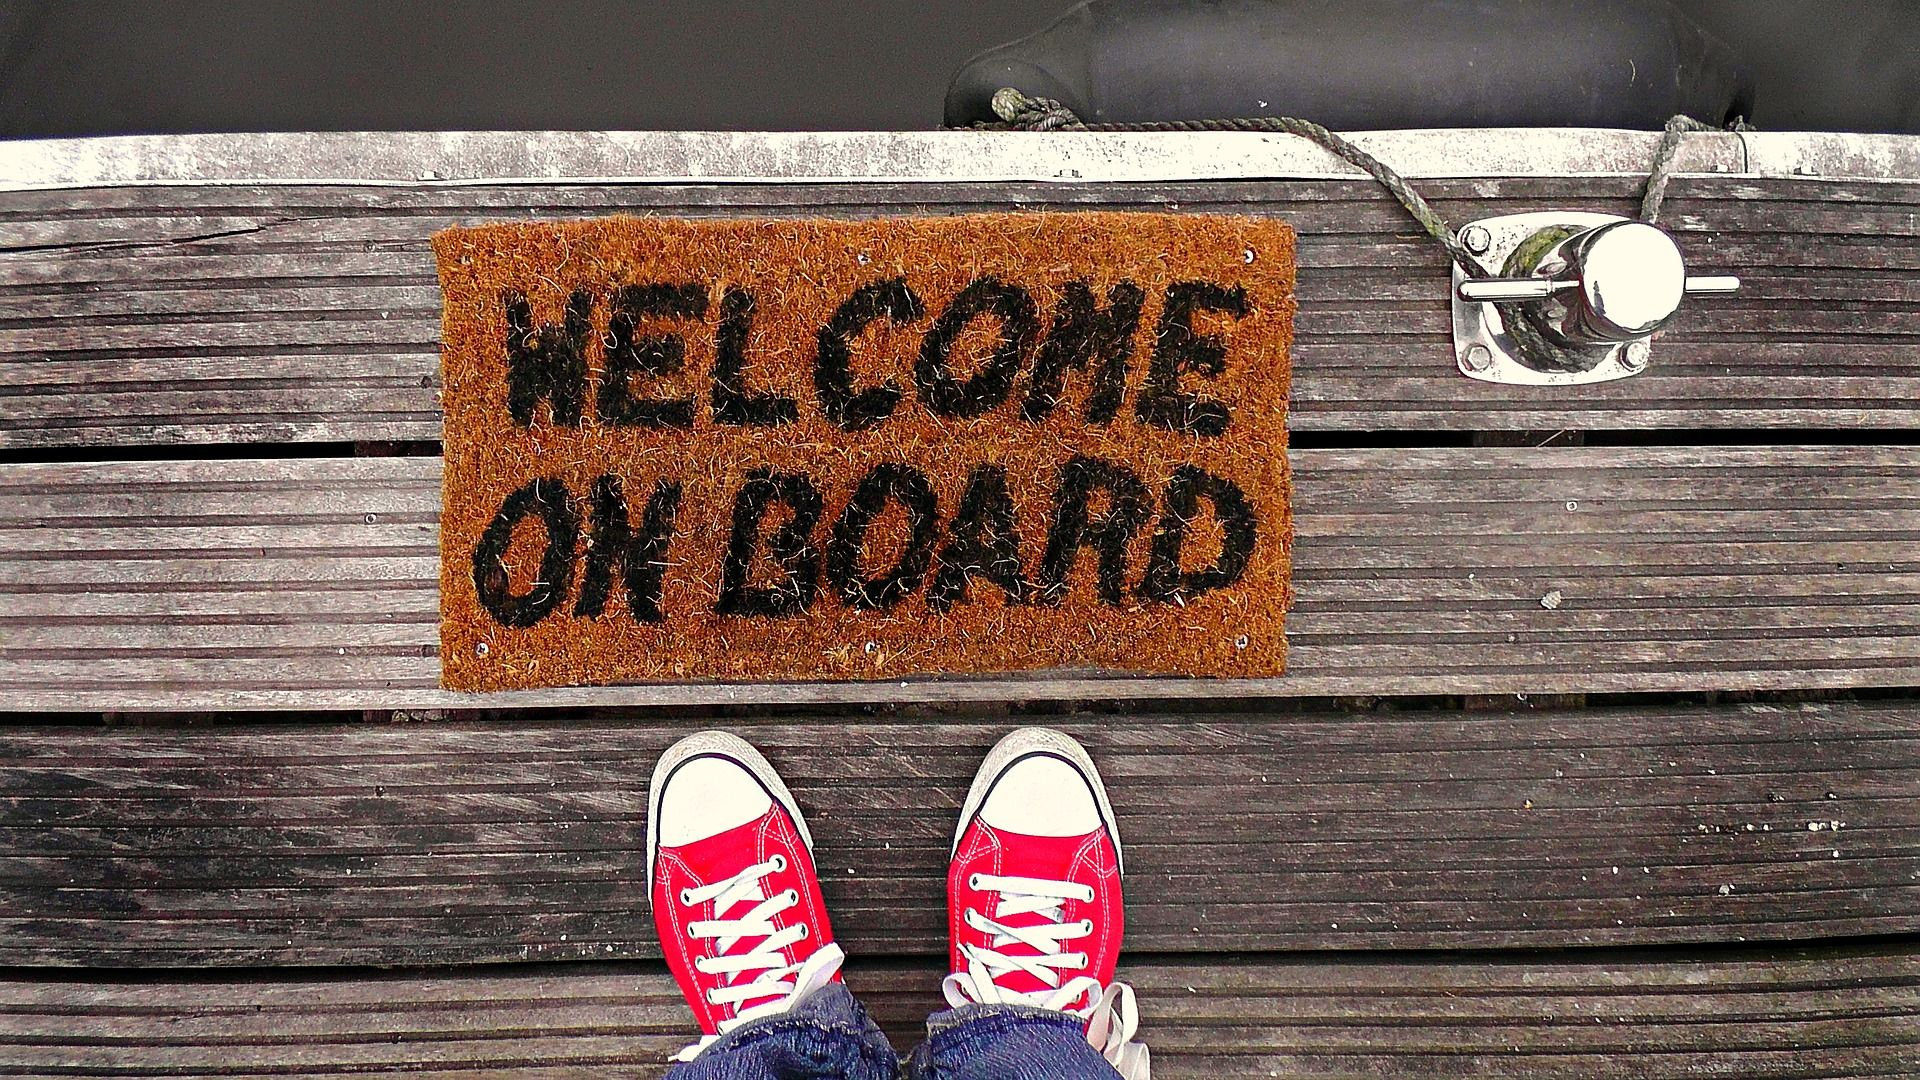 New and Renewing Board Members Welcomed to the Board